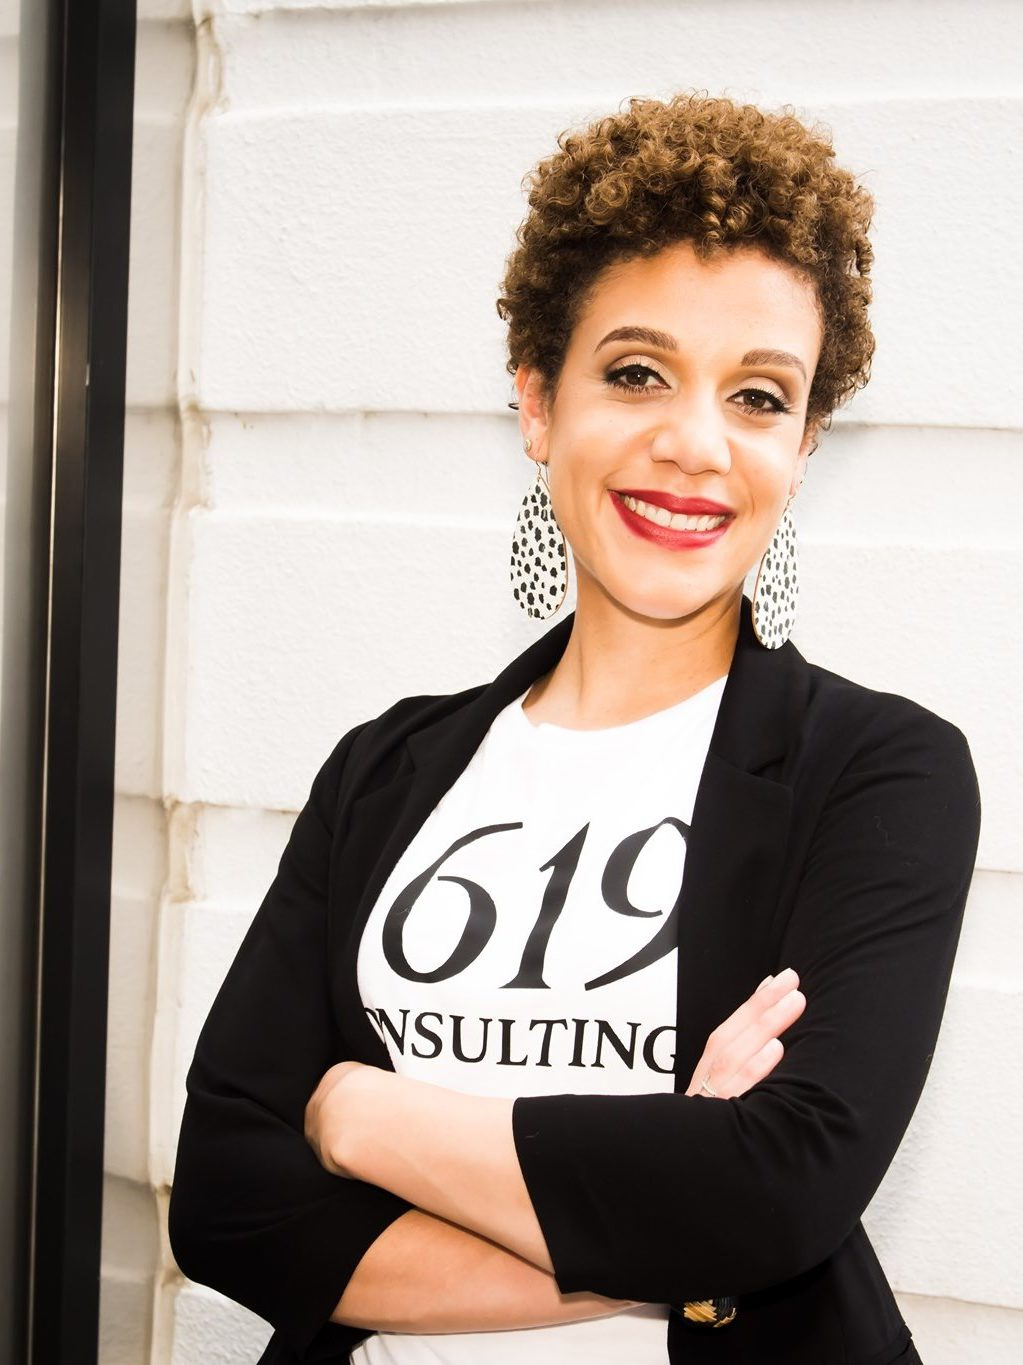 Bryana Clover headshot, Founder of 1619 Consulting and collaborator of CCW Transformation Ministries